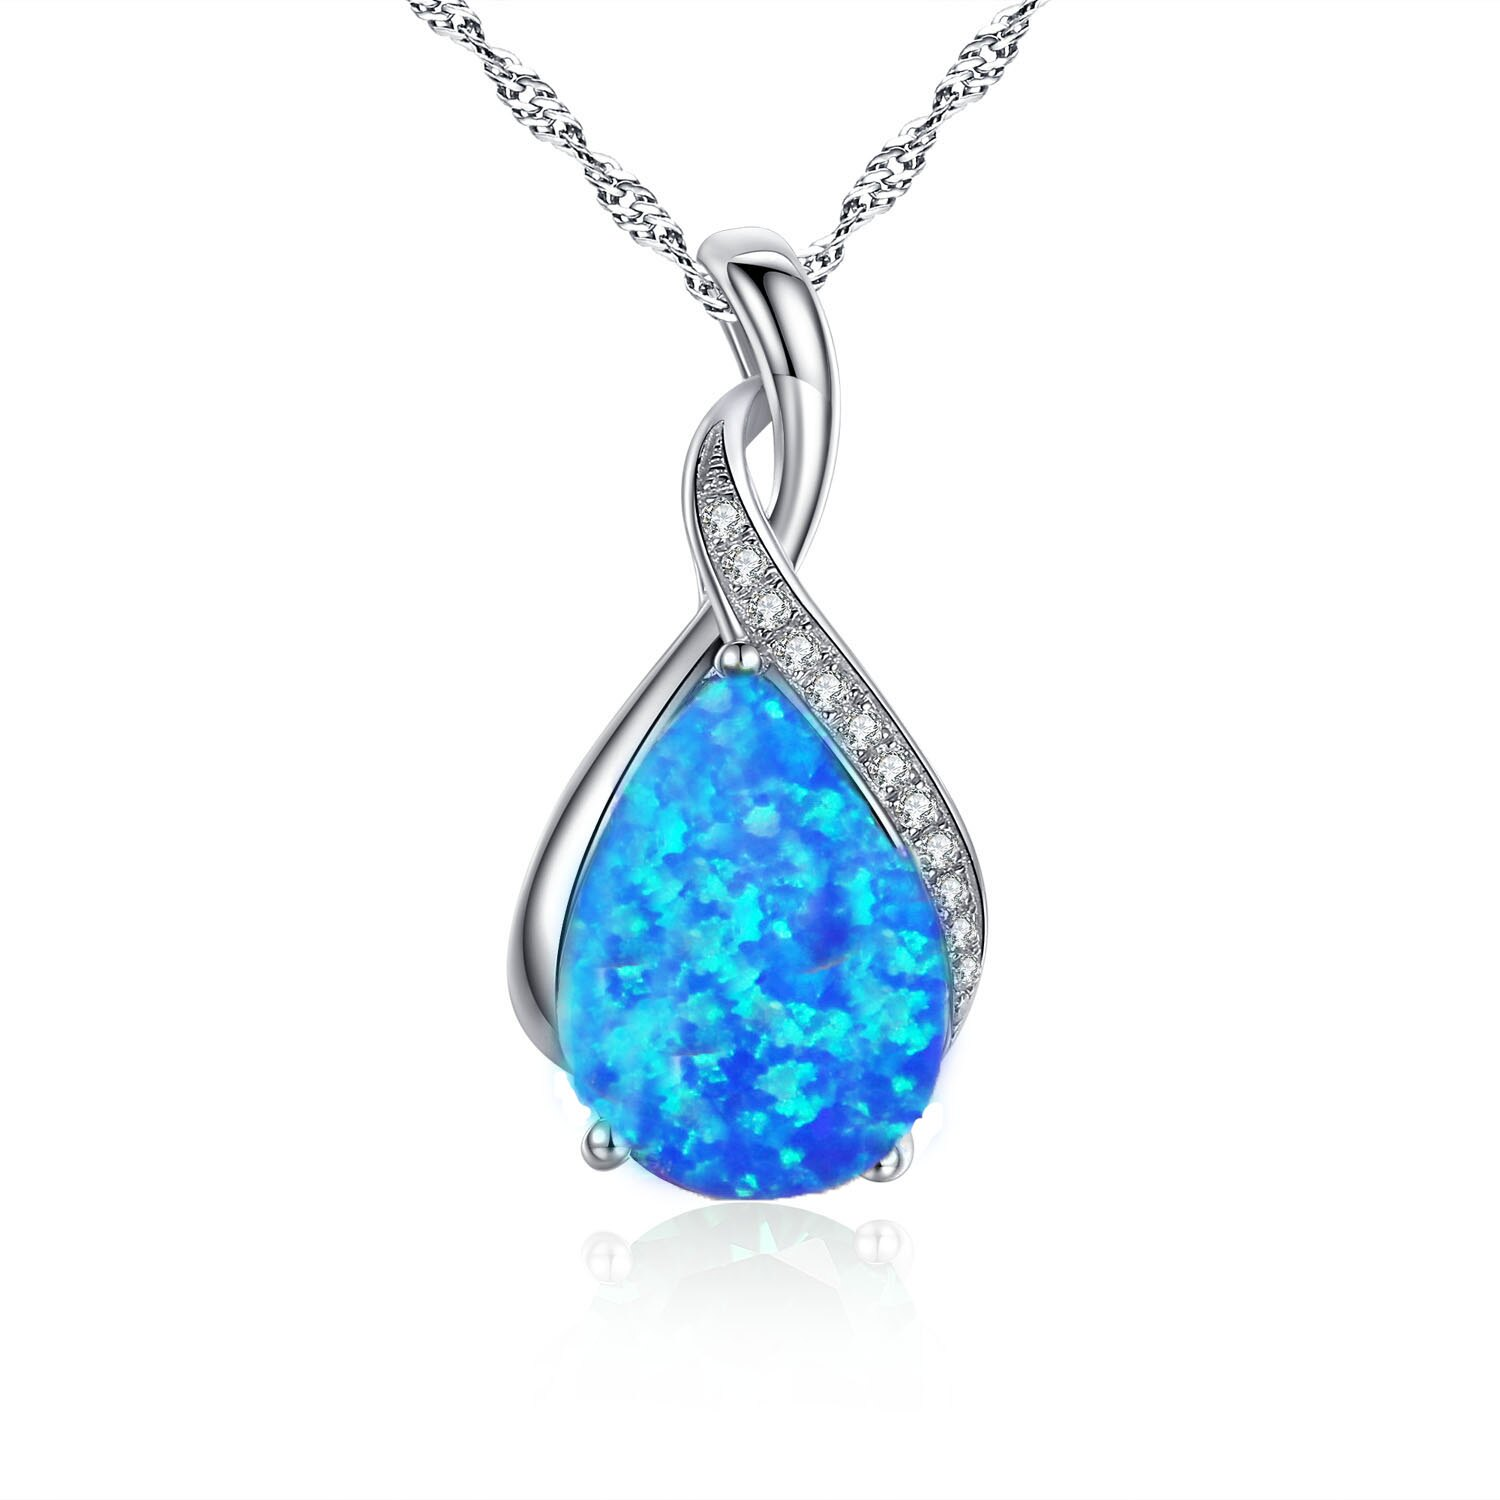 products opal c star top gifts product necklace chi david for ahuva silver image jewelry com pendant chain collections of blue quan packing necklaces fire sterling femme